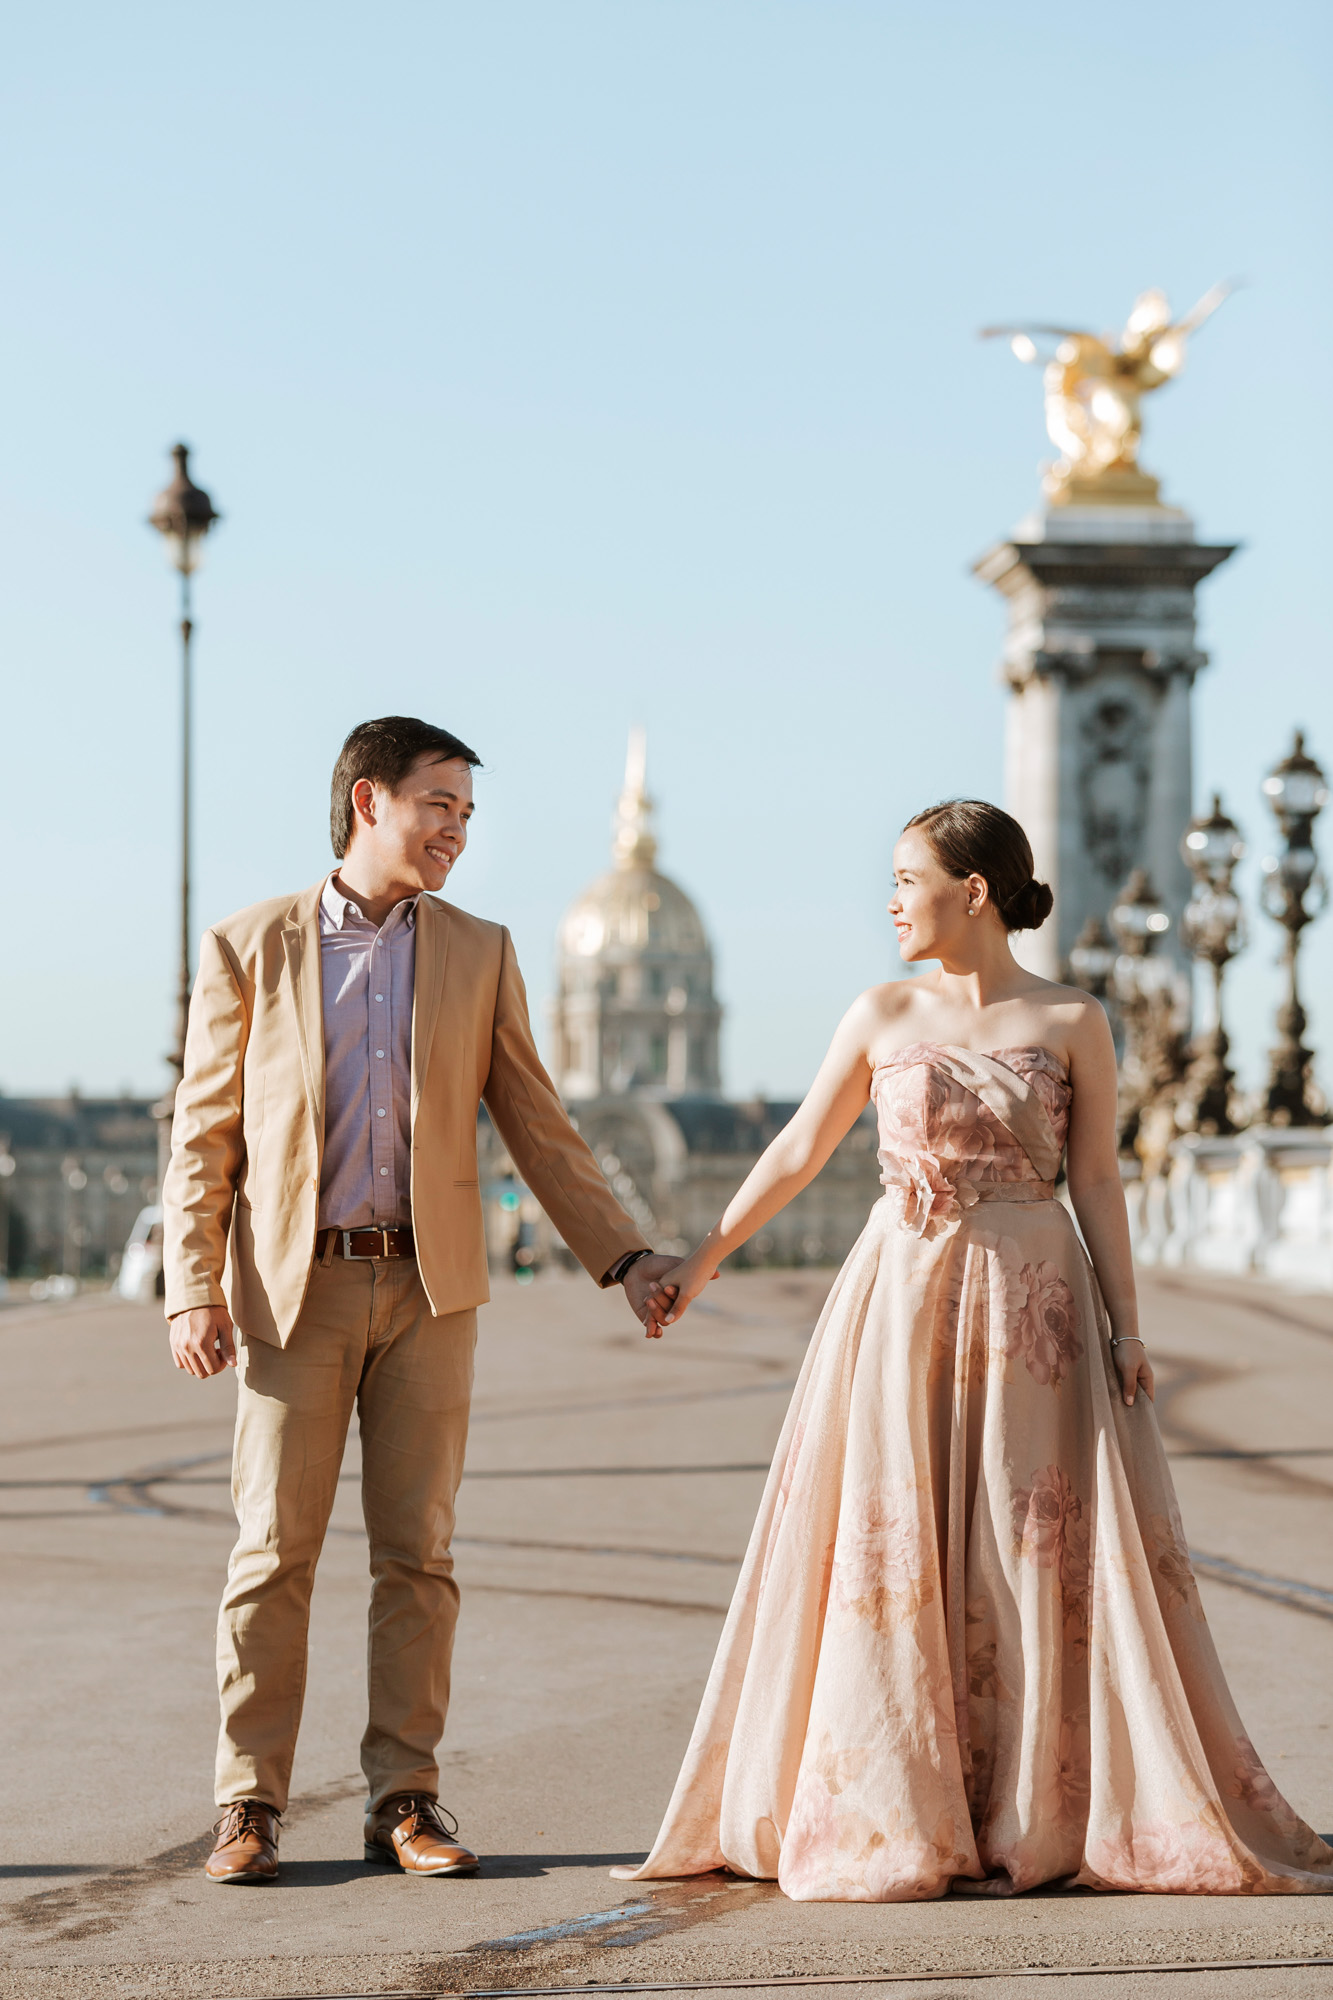 Pre-wedding couple portrait at Alexandre III bridge captured by Paris Photographer Federico Guendel